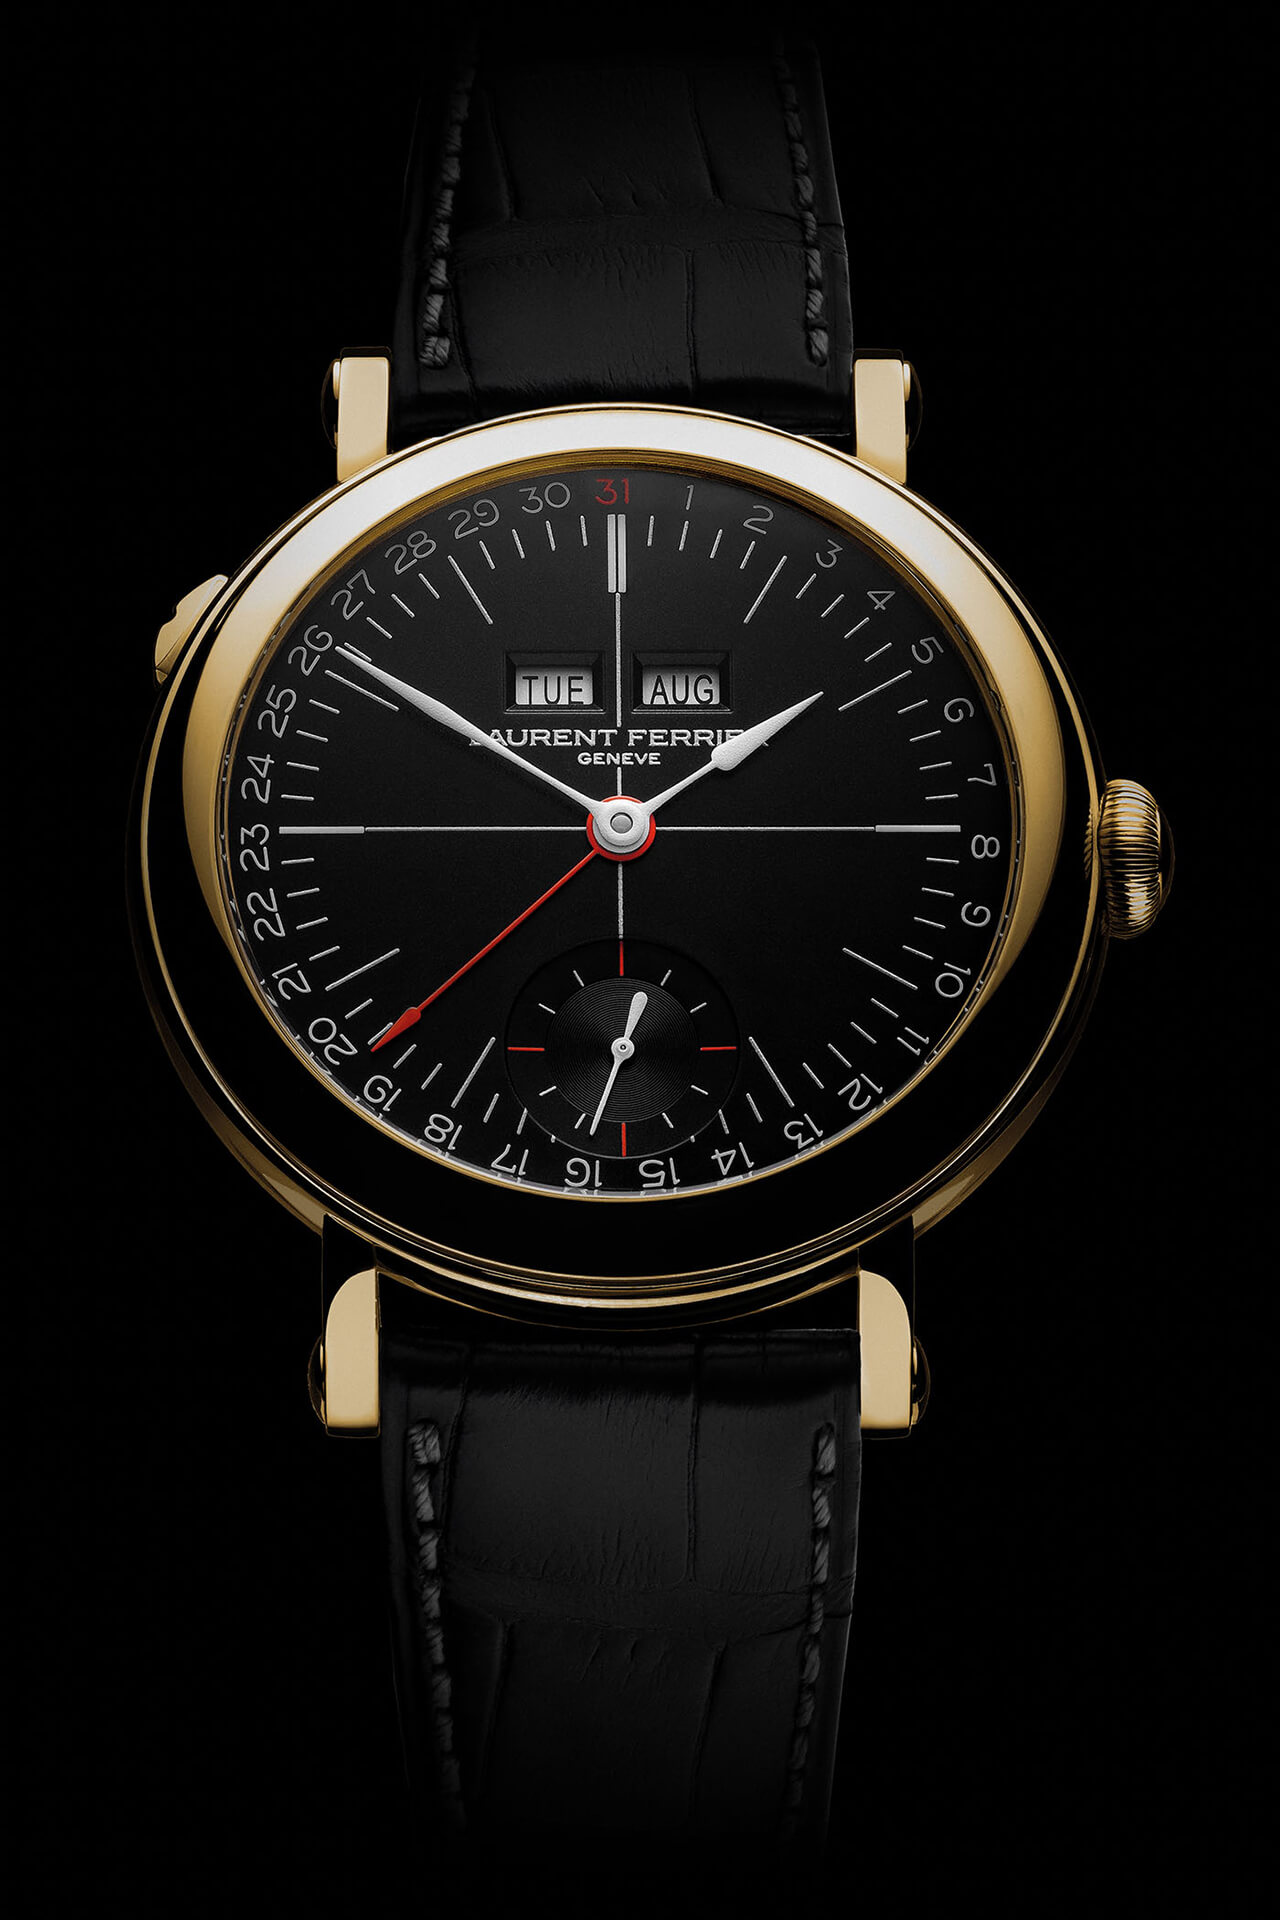 Laurent Ferrier Galet Annusl Calendar School Piece Opaline Black